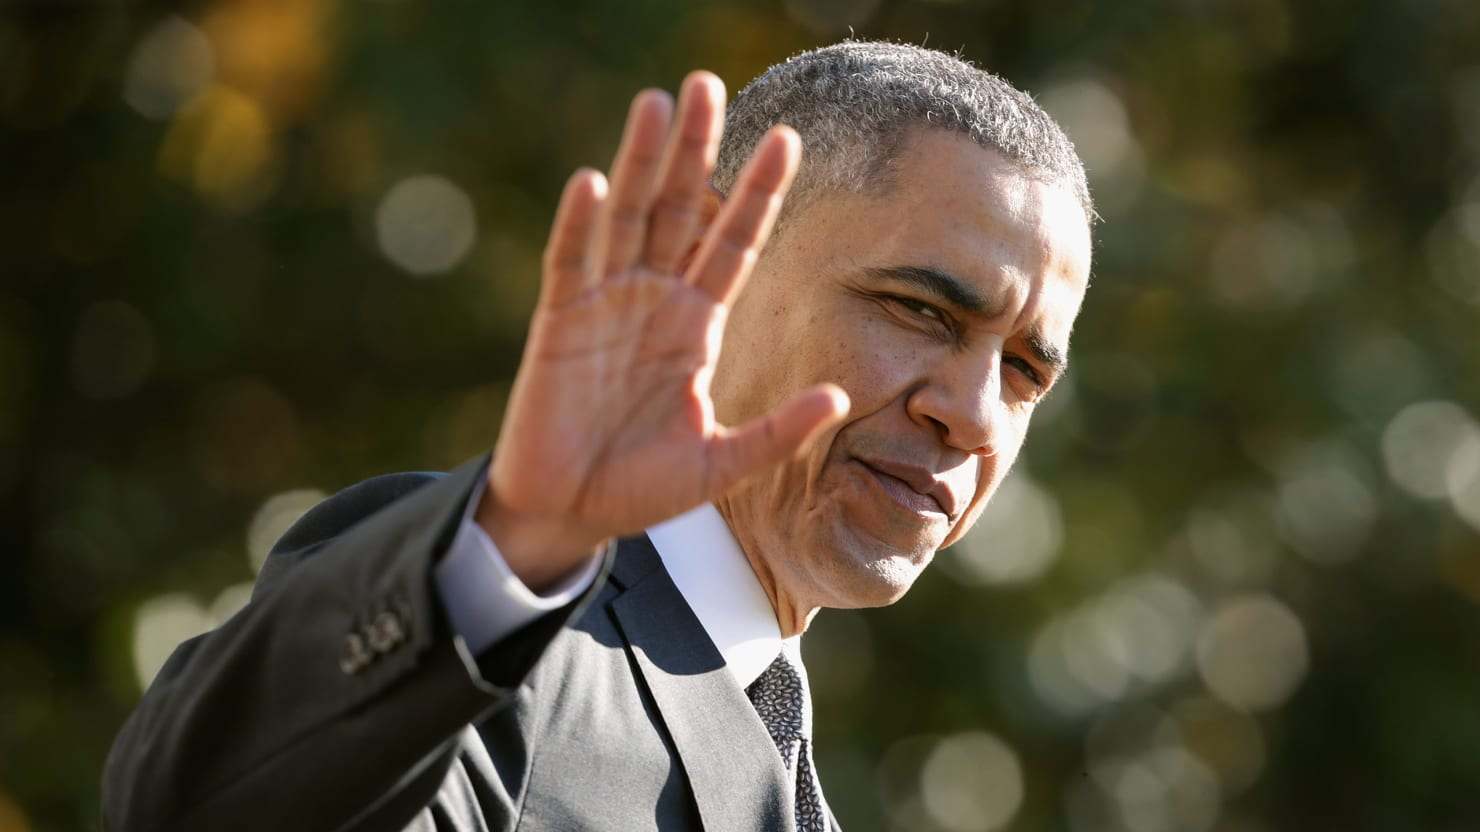 You Can Blame the Economy for President Obama's Unpopularity